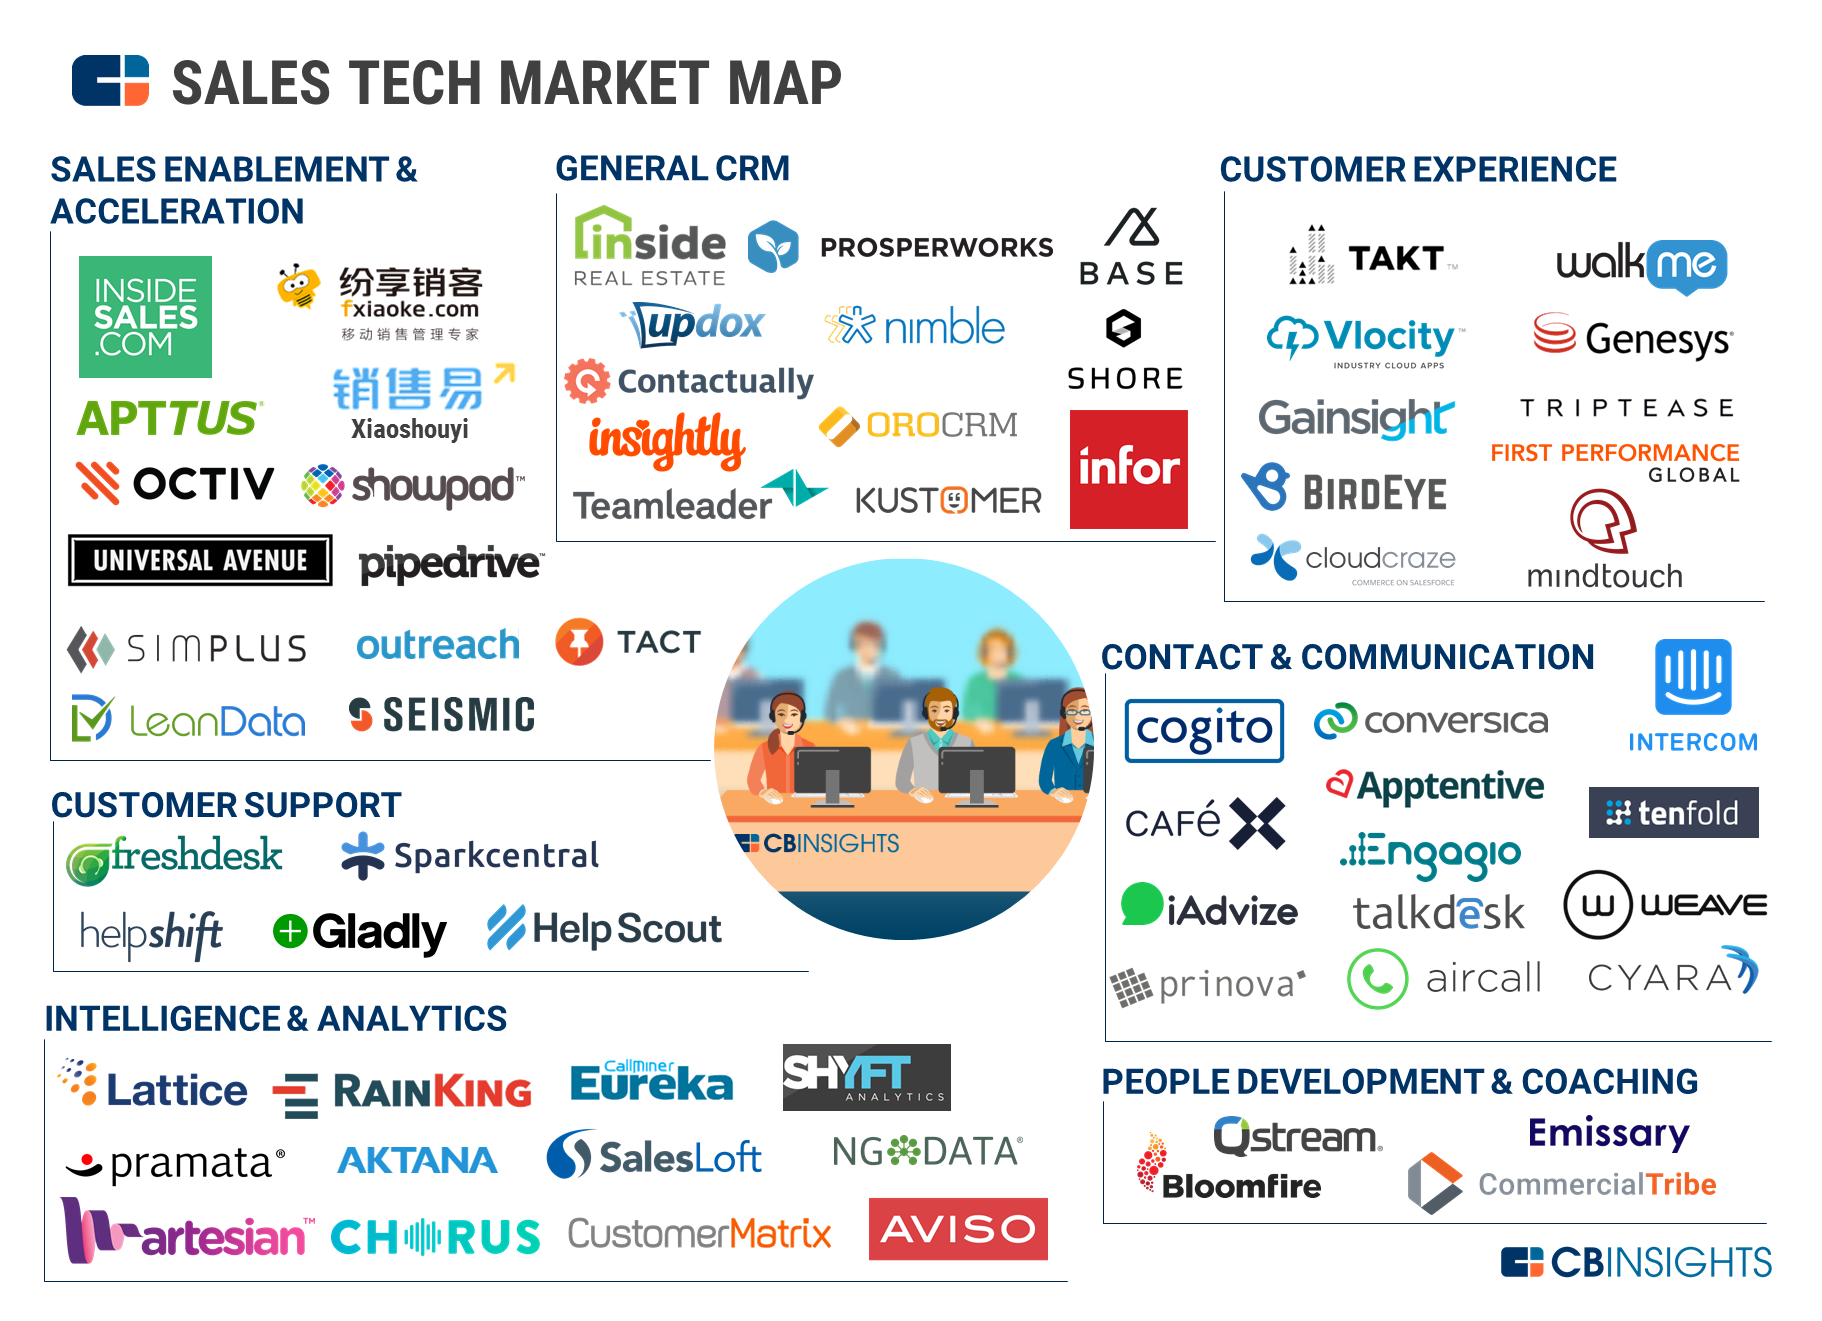 Market-Map-Template-exported-png-3.2.17.png